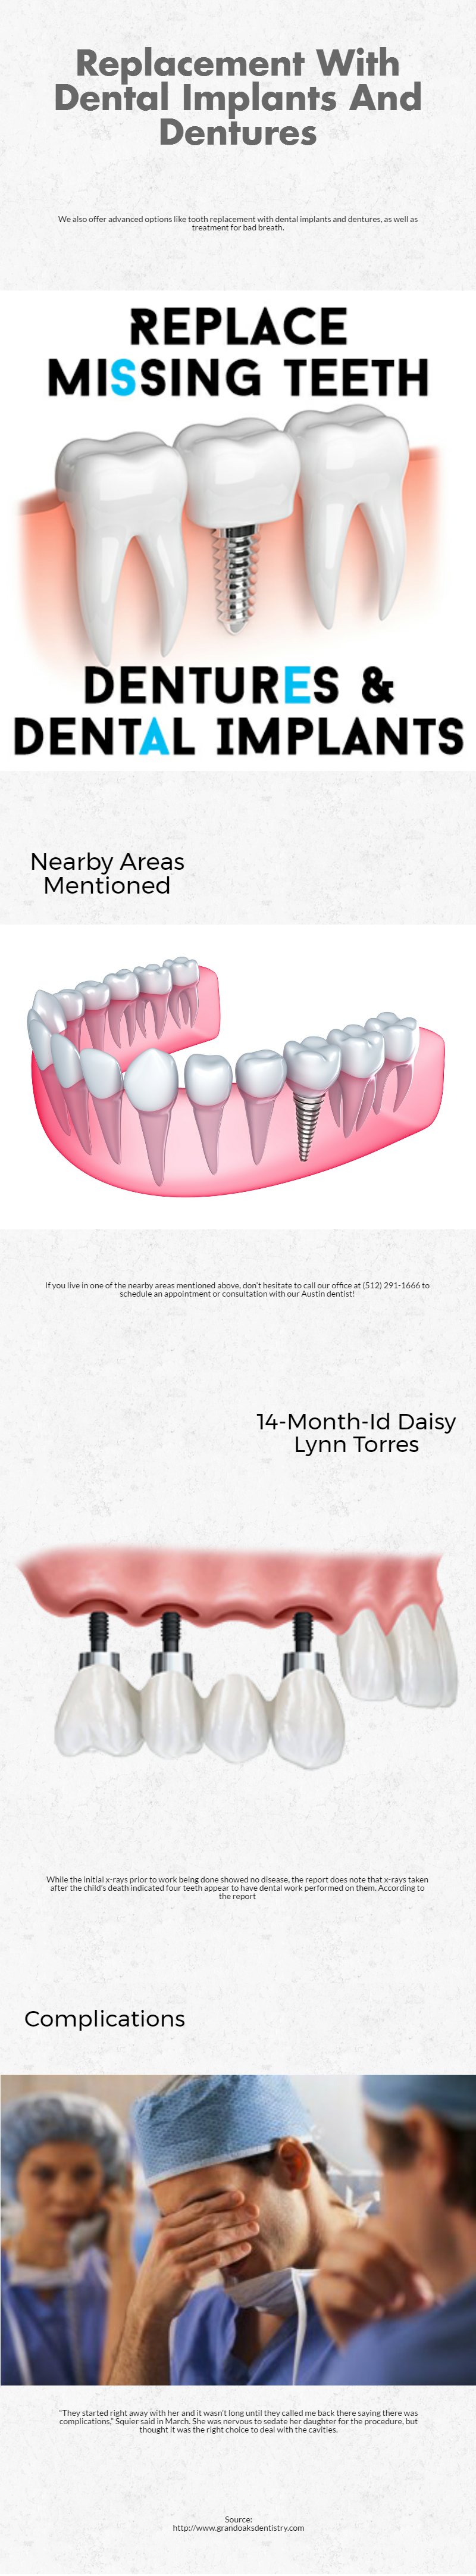 Replacement With Dental Implants And Dentures We have a wide variety